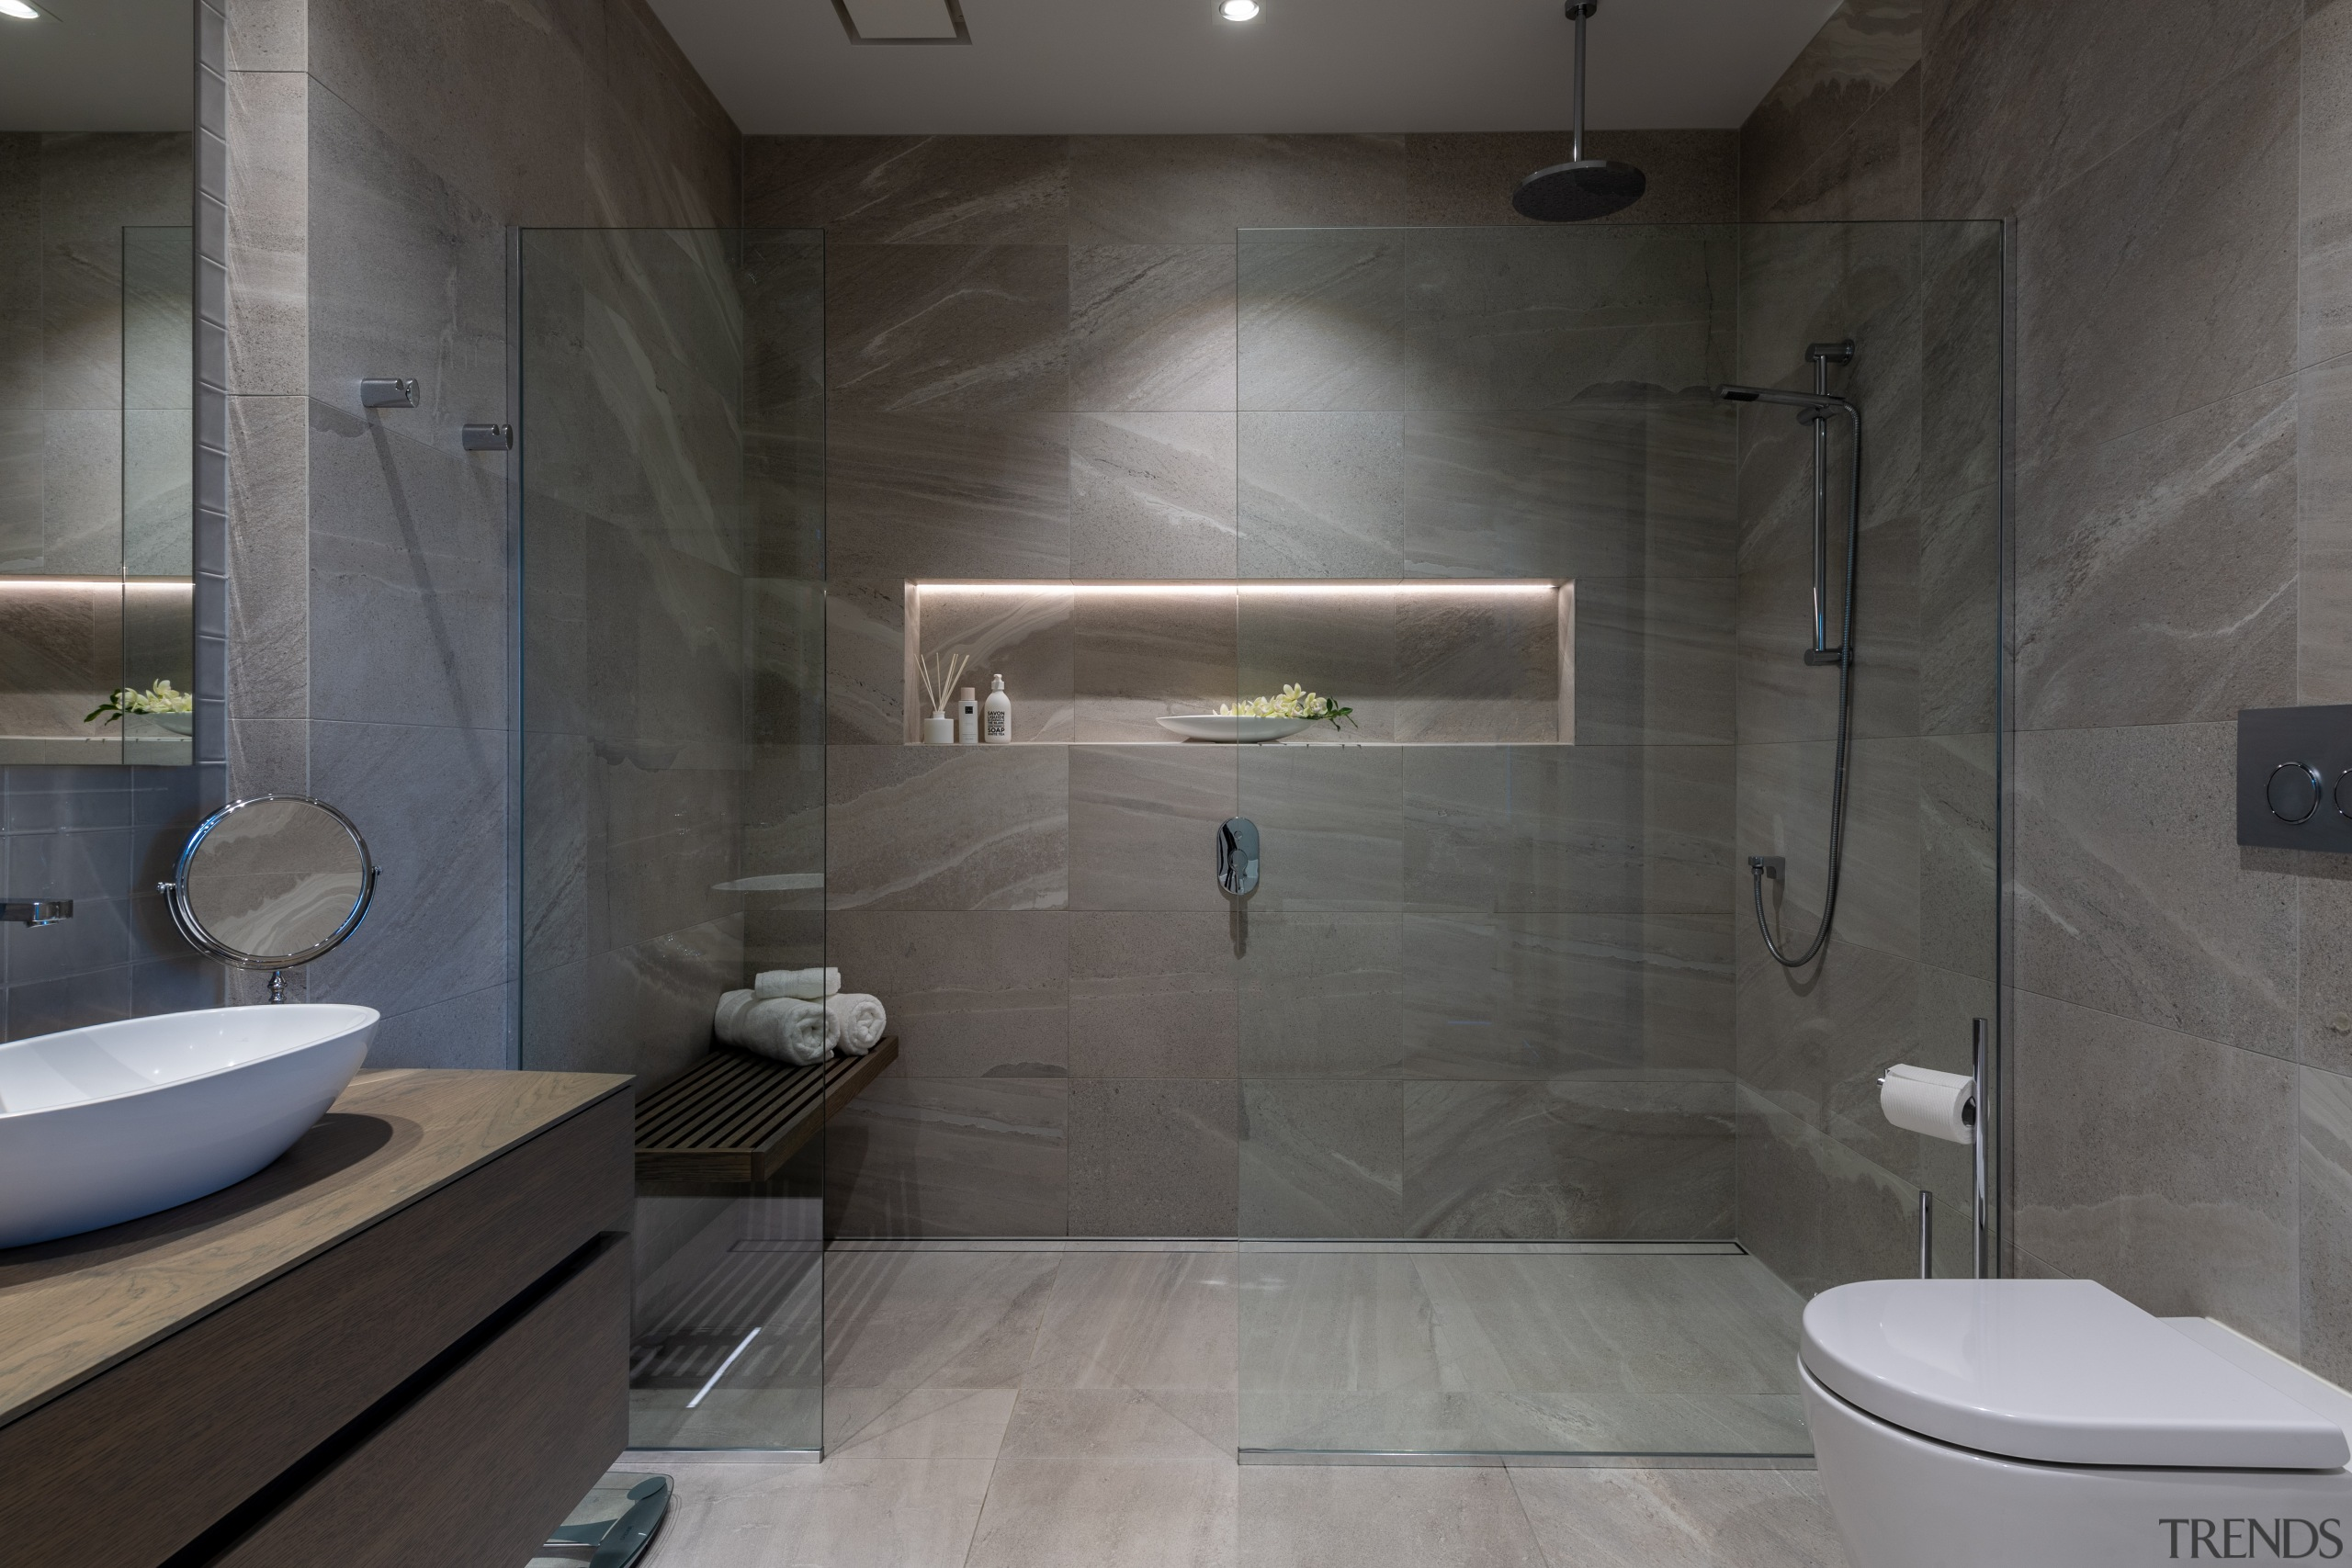 Running the same large-format tiles through the bathroom